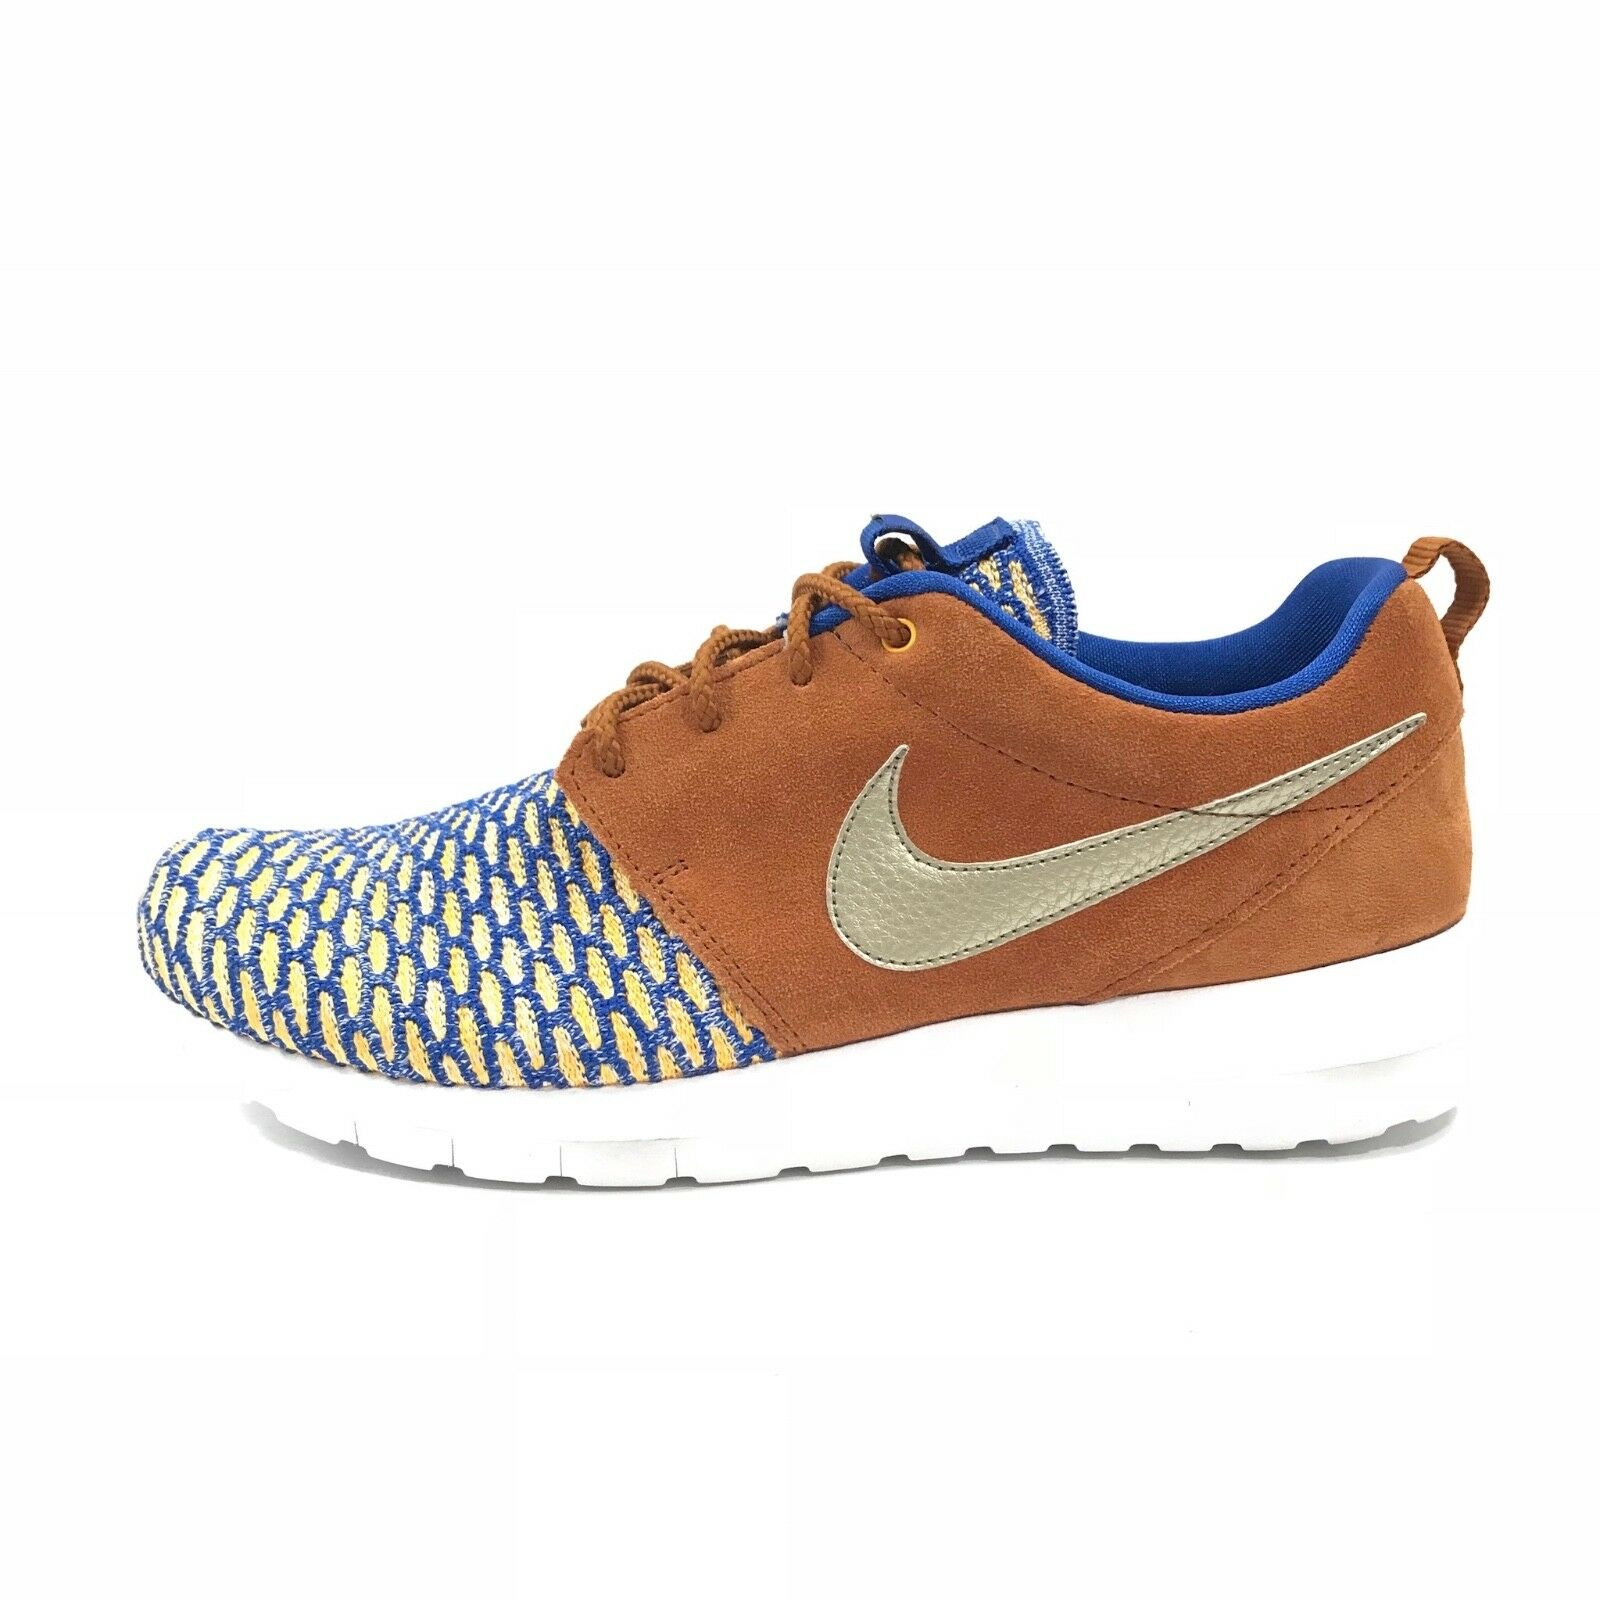 Nike Mens Roshe Flyknit Tawny PRM Premium Game Royal Metallic Sz 8.5 746825-402